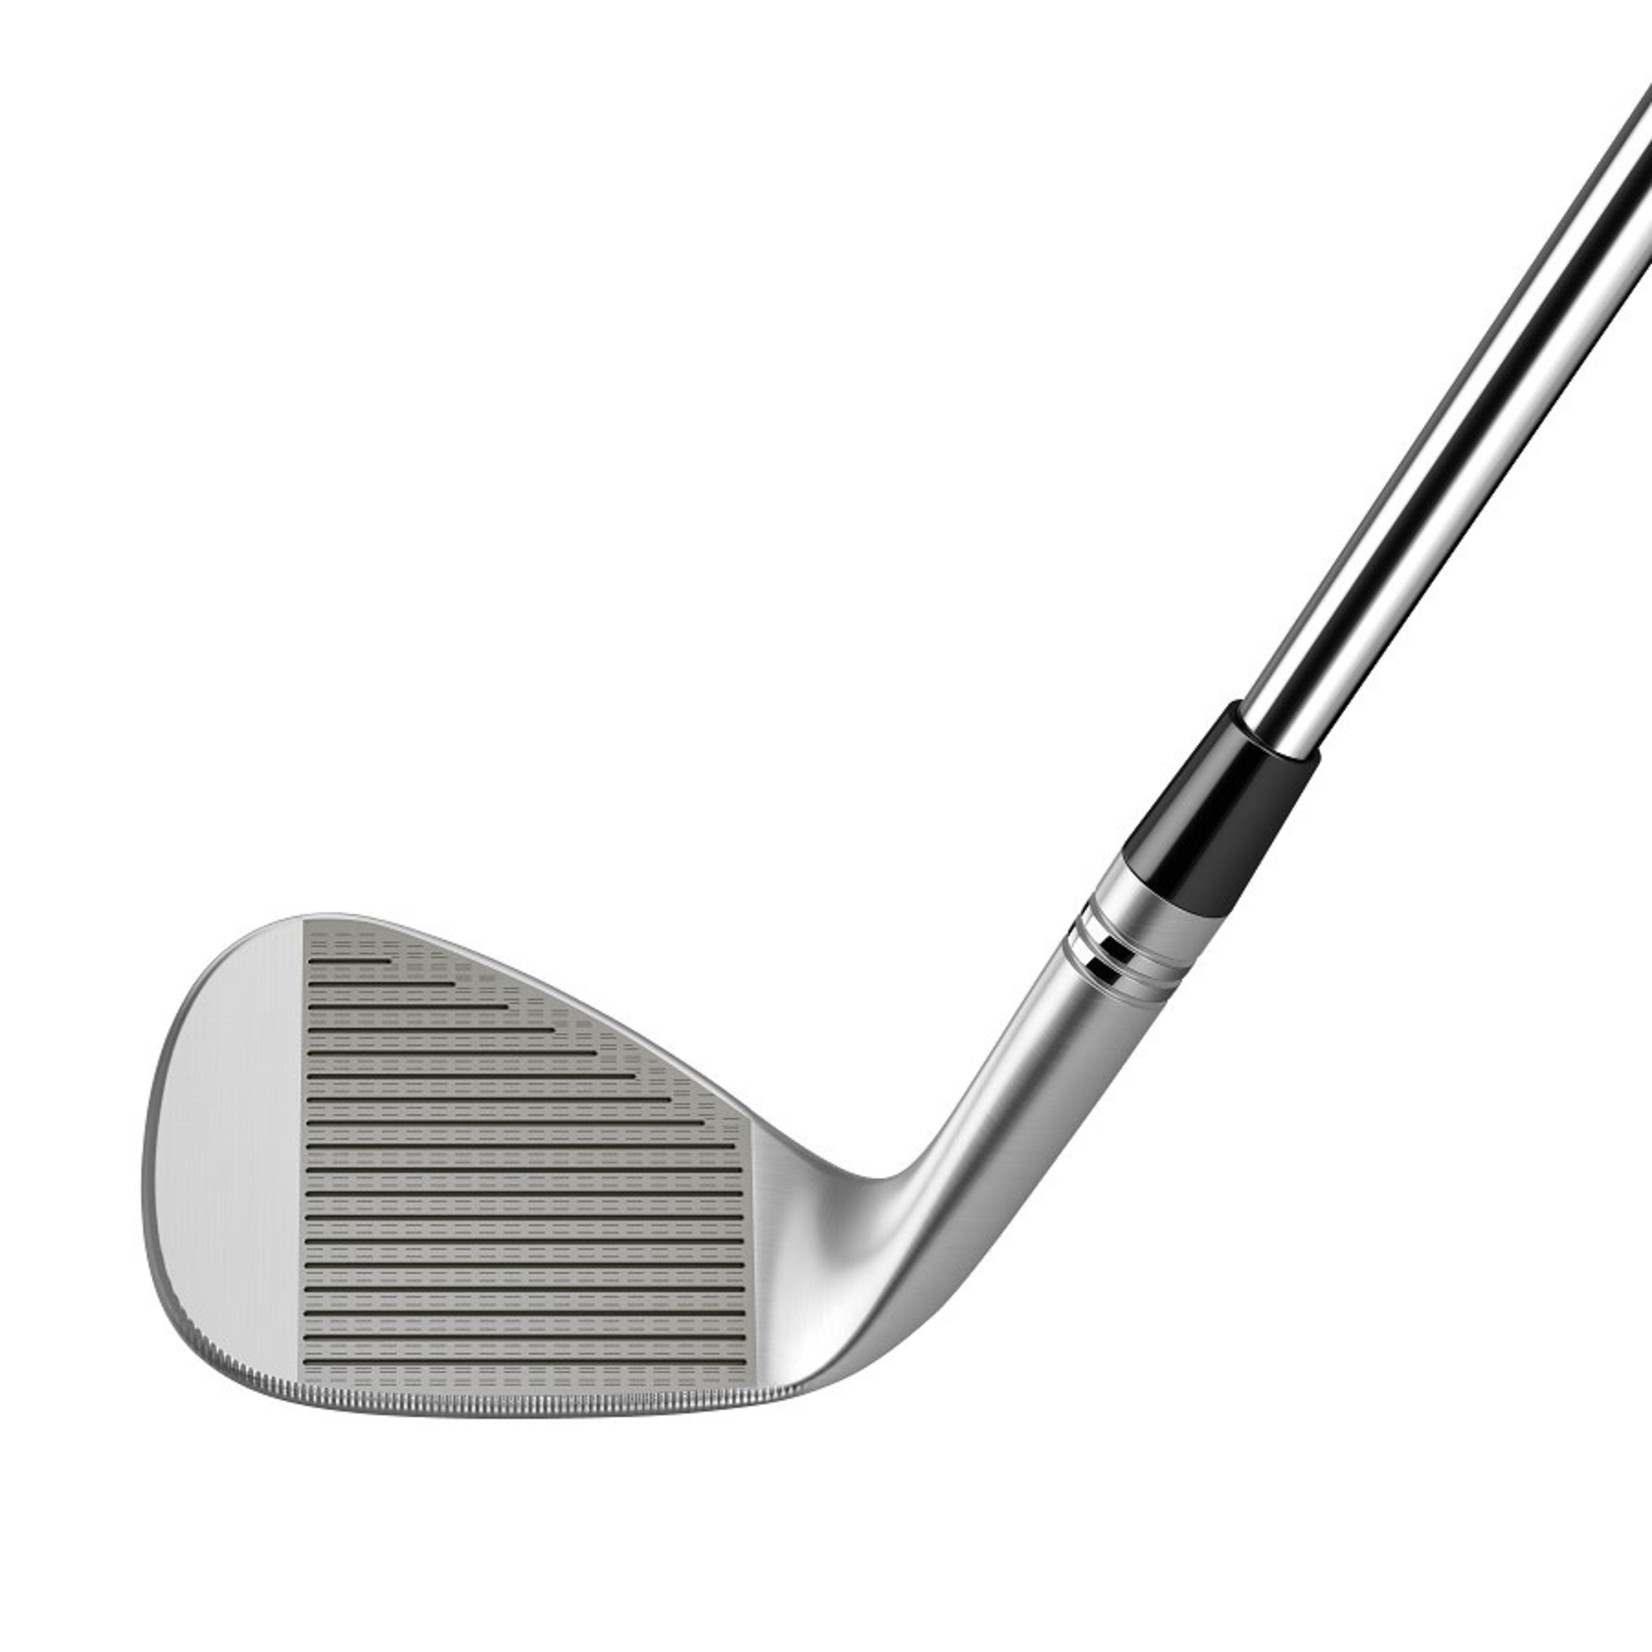 Taylor Made TaylorMade MG2 2.0 Wedge Chrome LEFTHANDED 52.09 graden